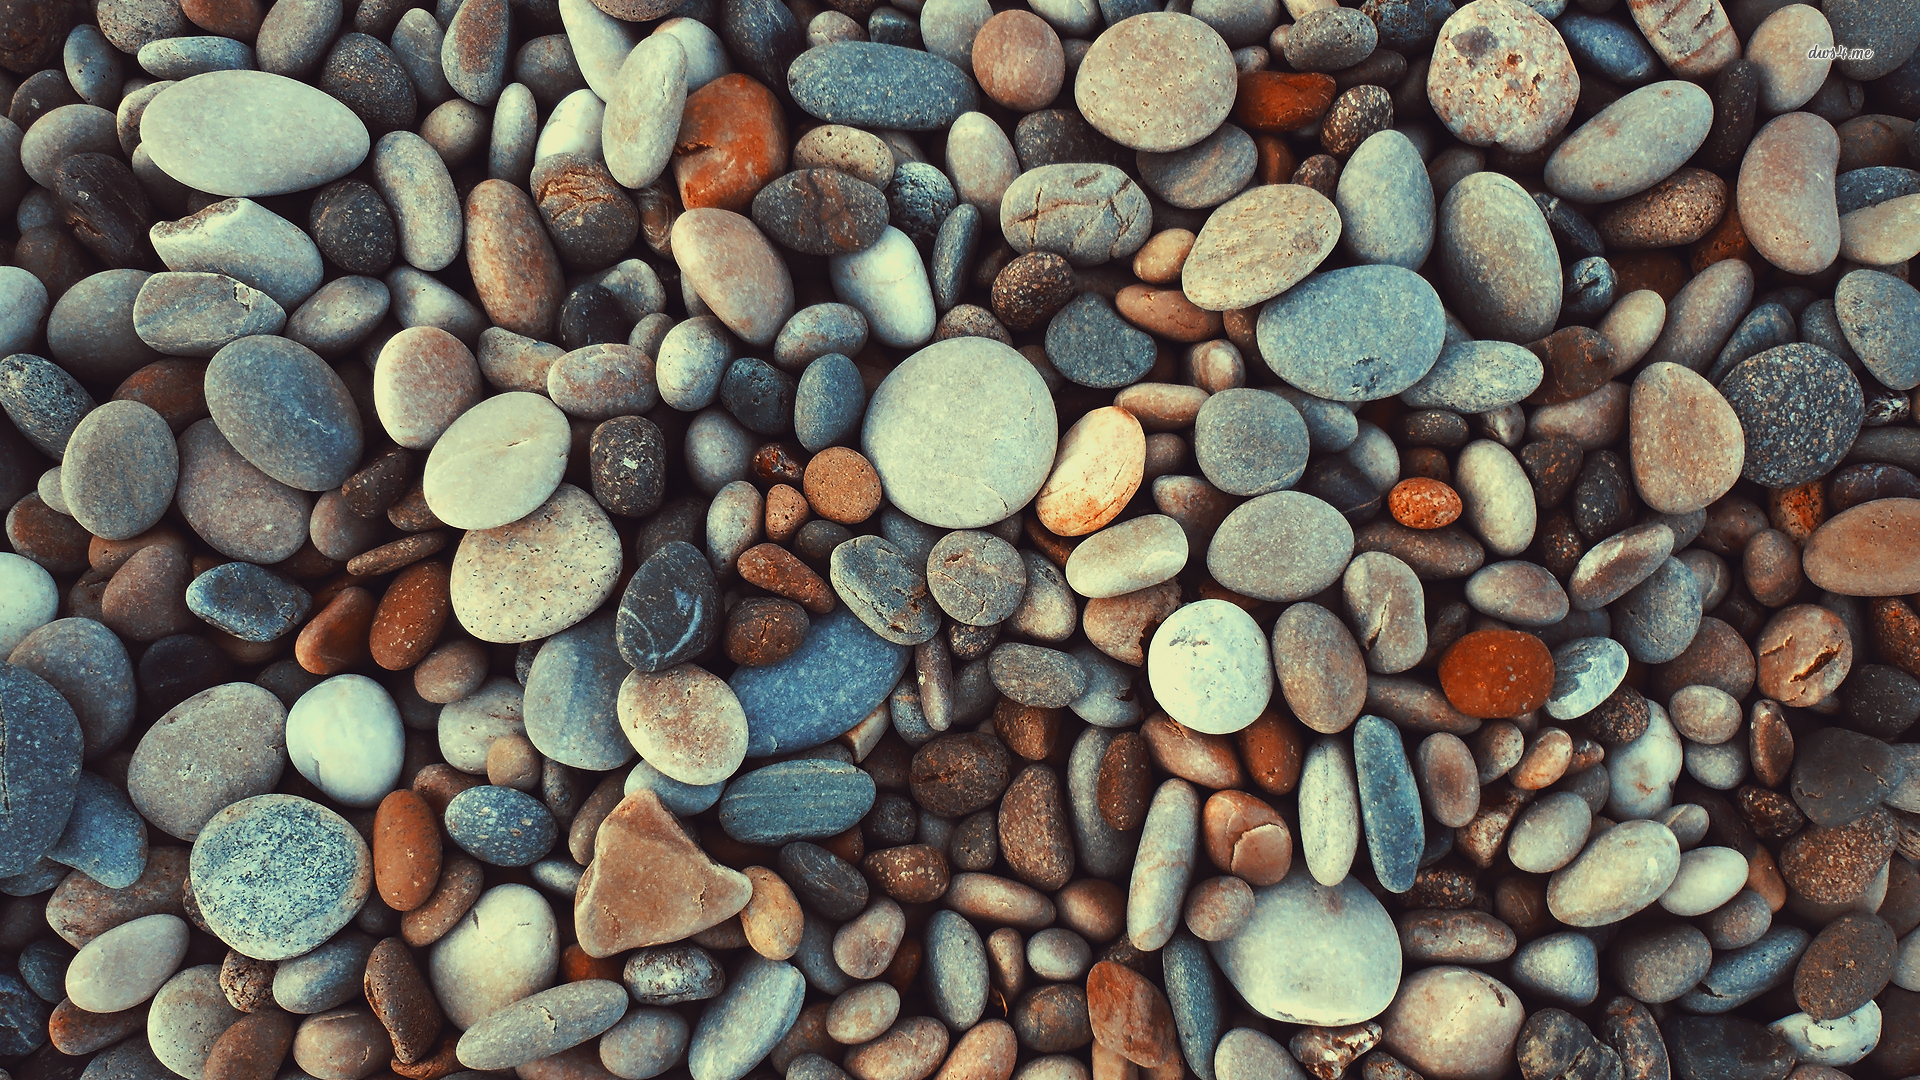 Photo Collection: WBT.53 Pebbles, 02.25.15